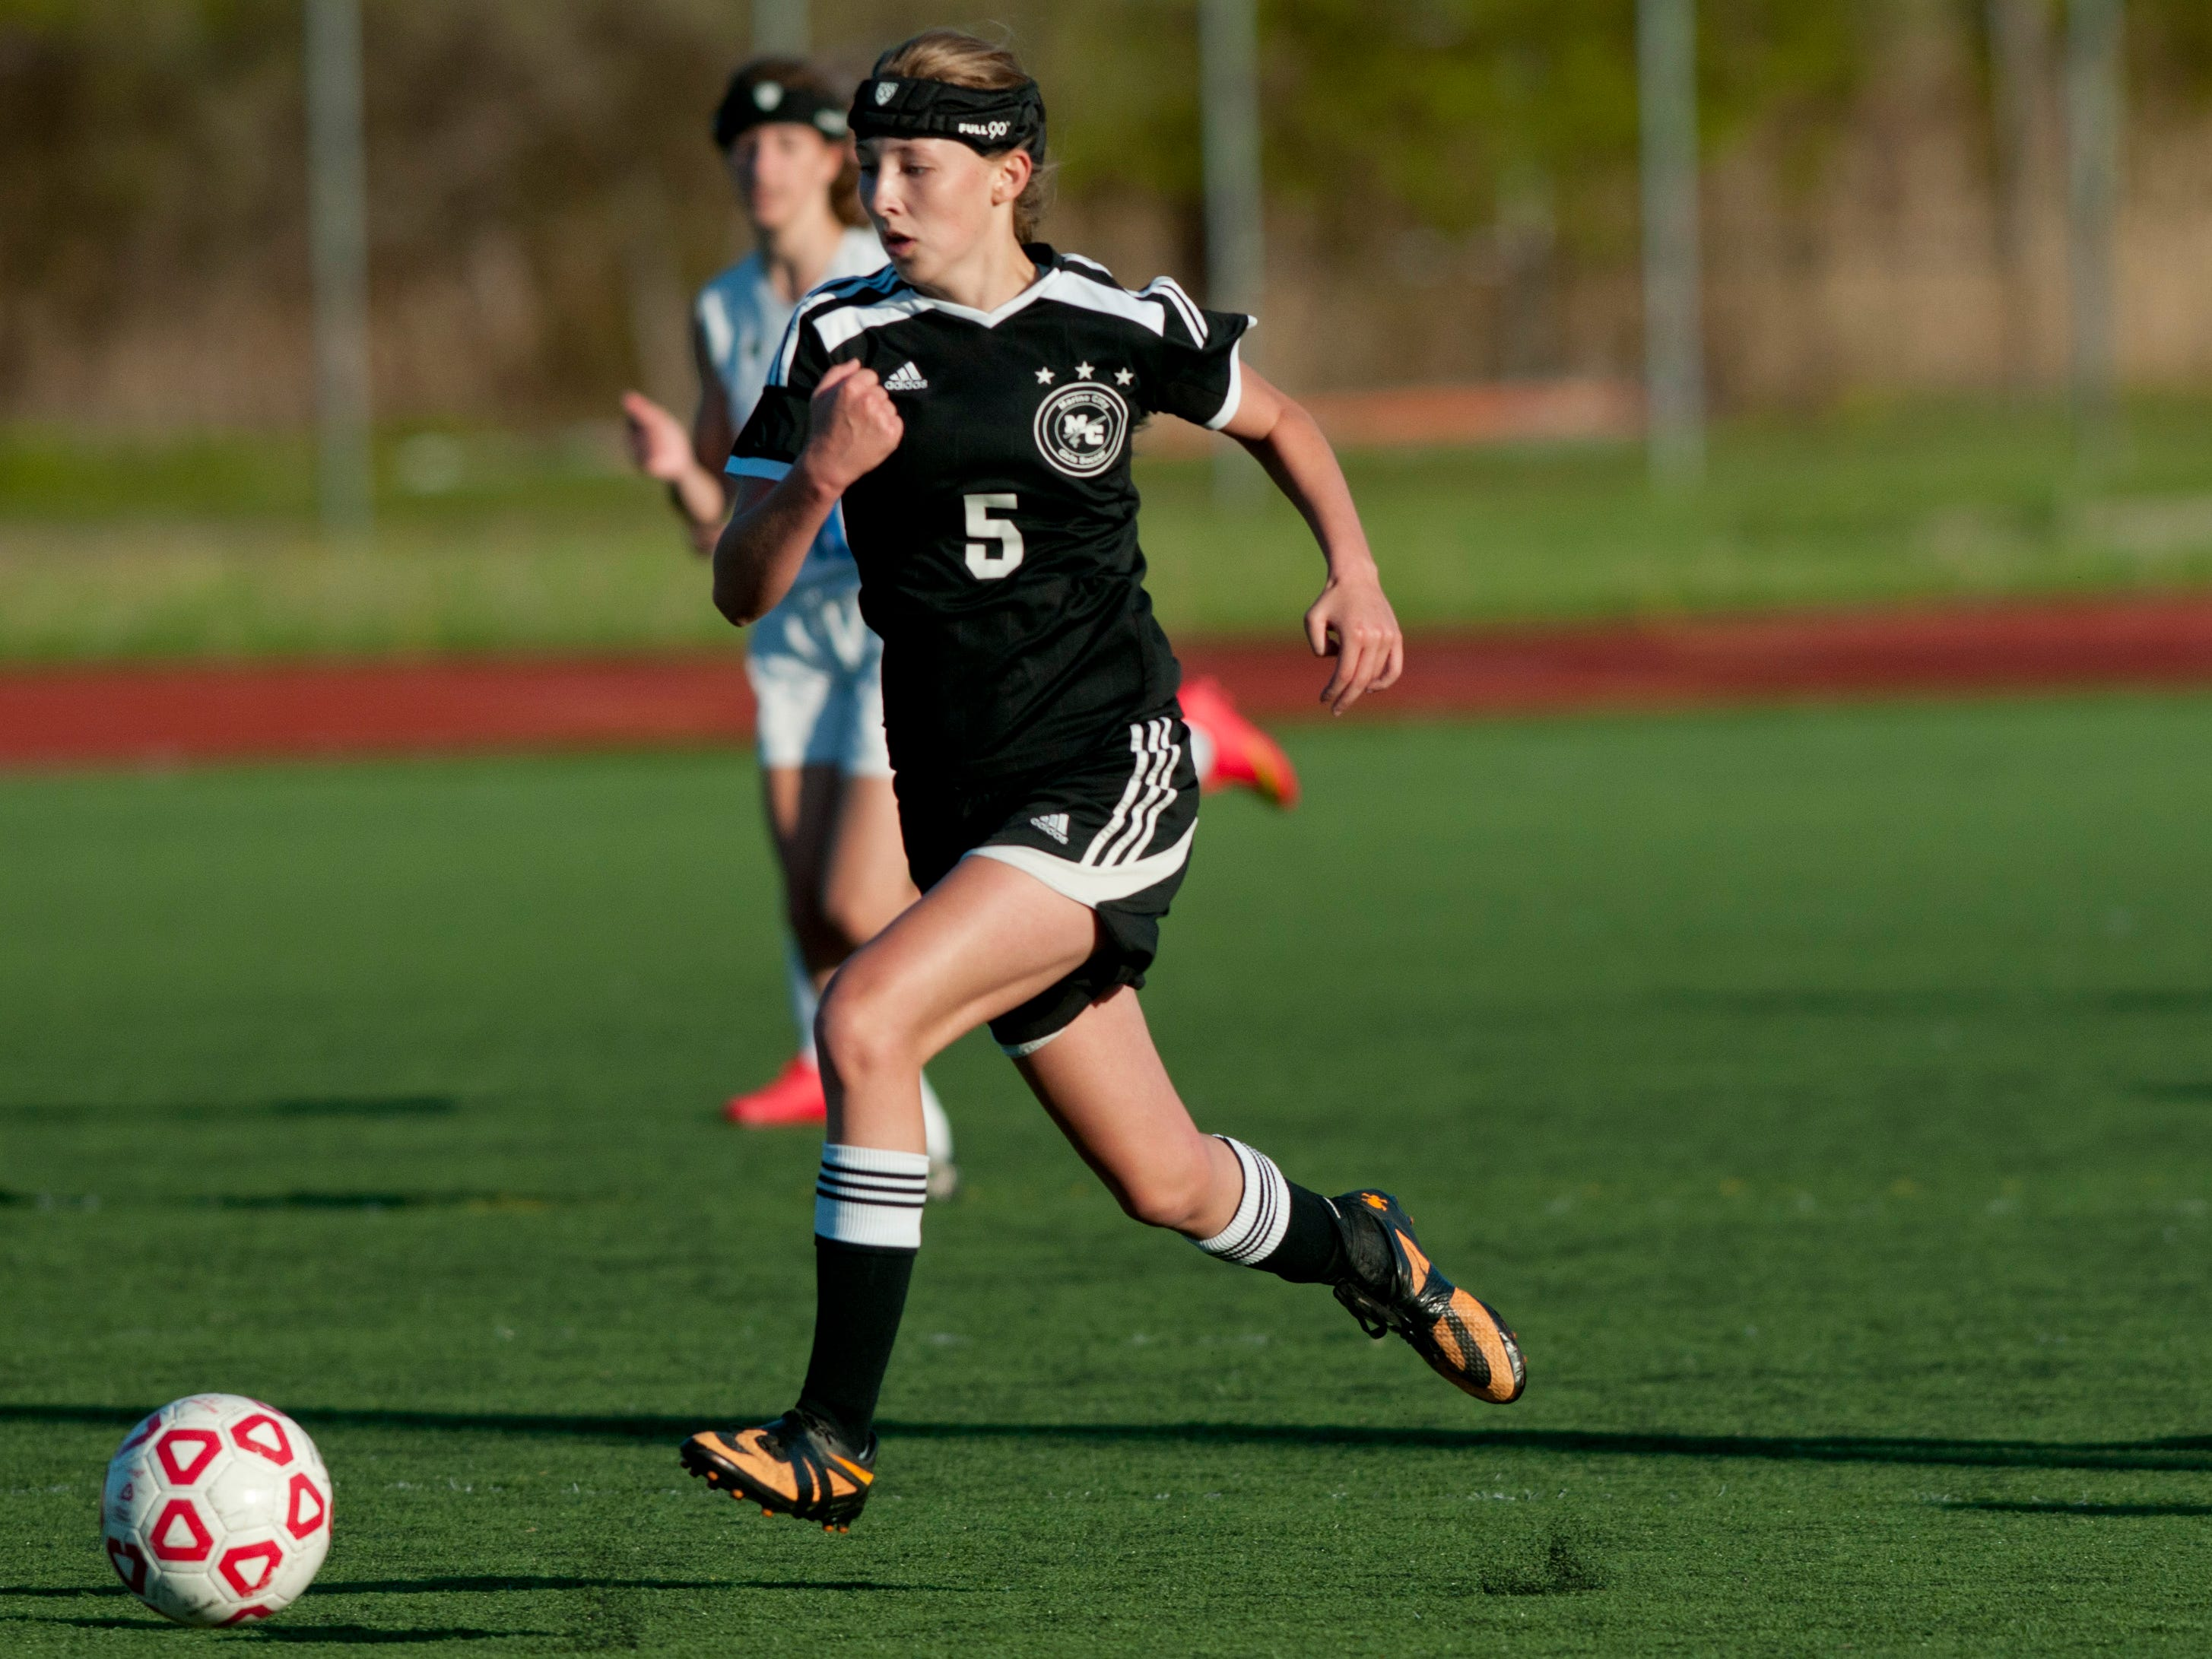 Marine City sophomore Emilie Andrews goes for a shot on goal during a soccer same Wednesday, May 13, 2015 at East China Stadium.